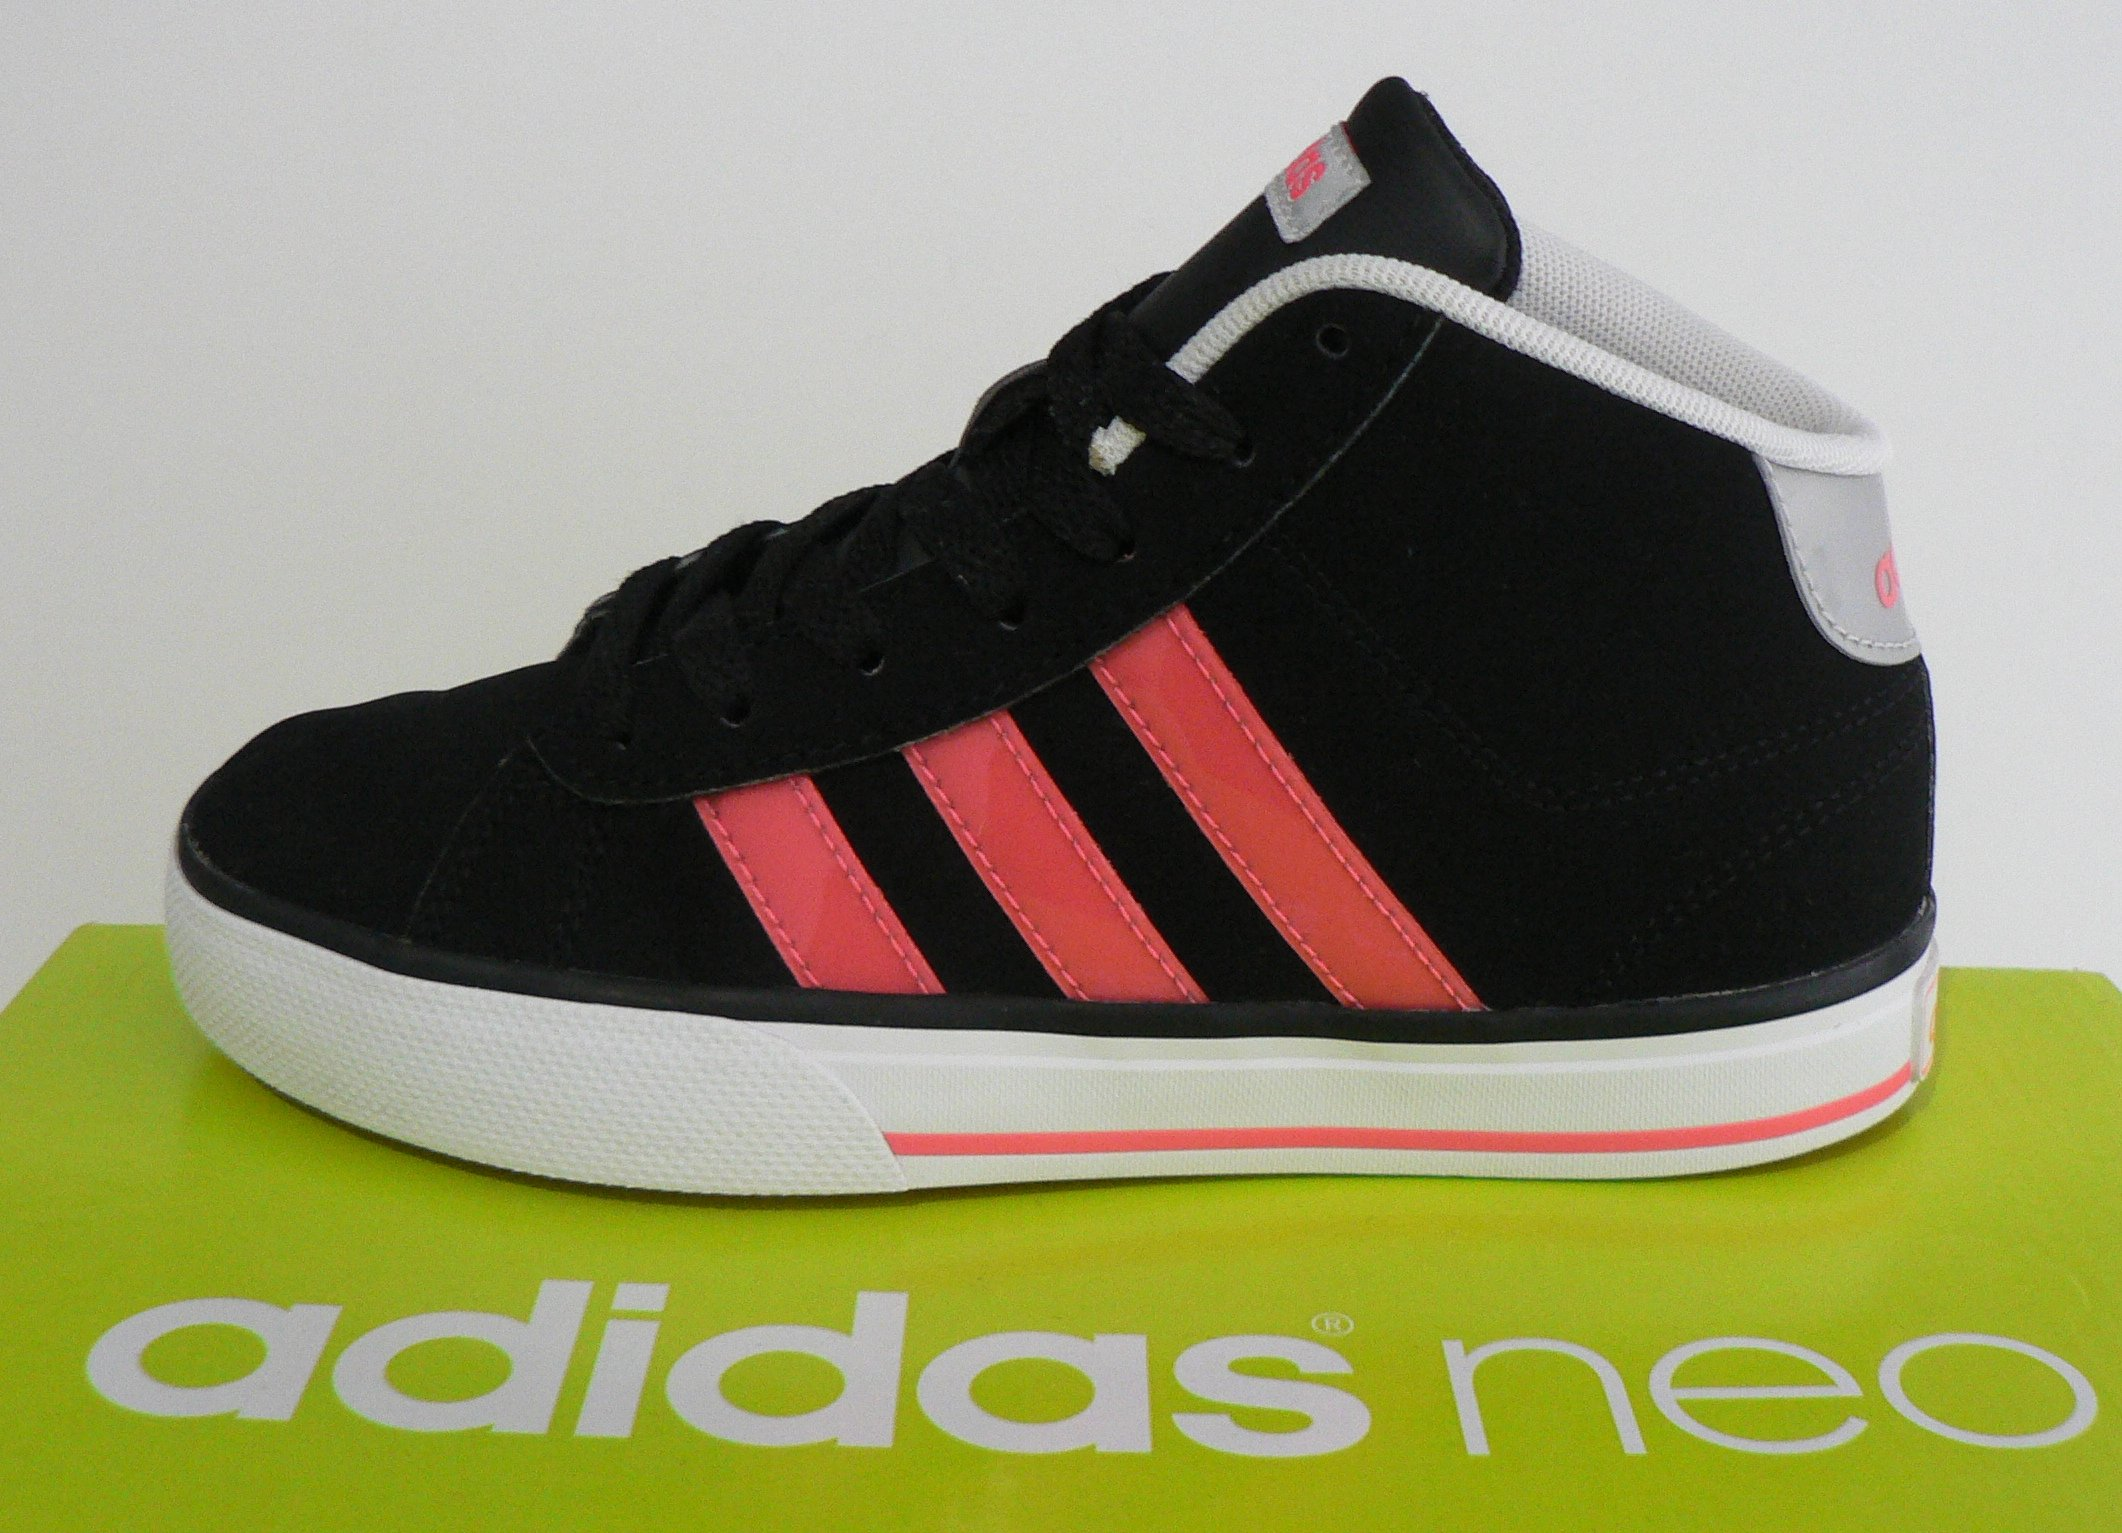 BUTY ADIDAS NEO DAILY TEAM AW 4577 41 13.!!!